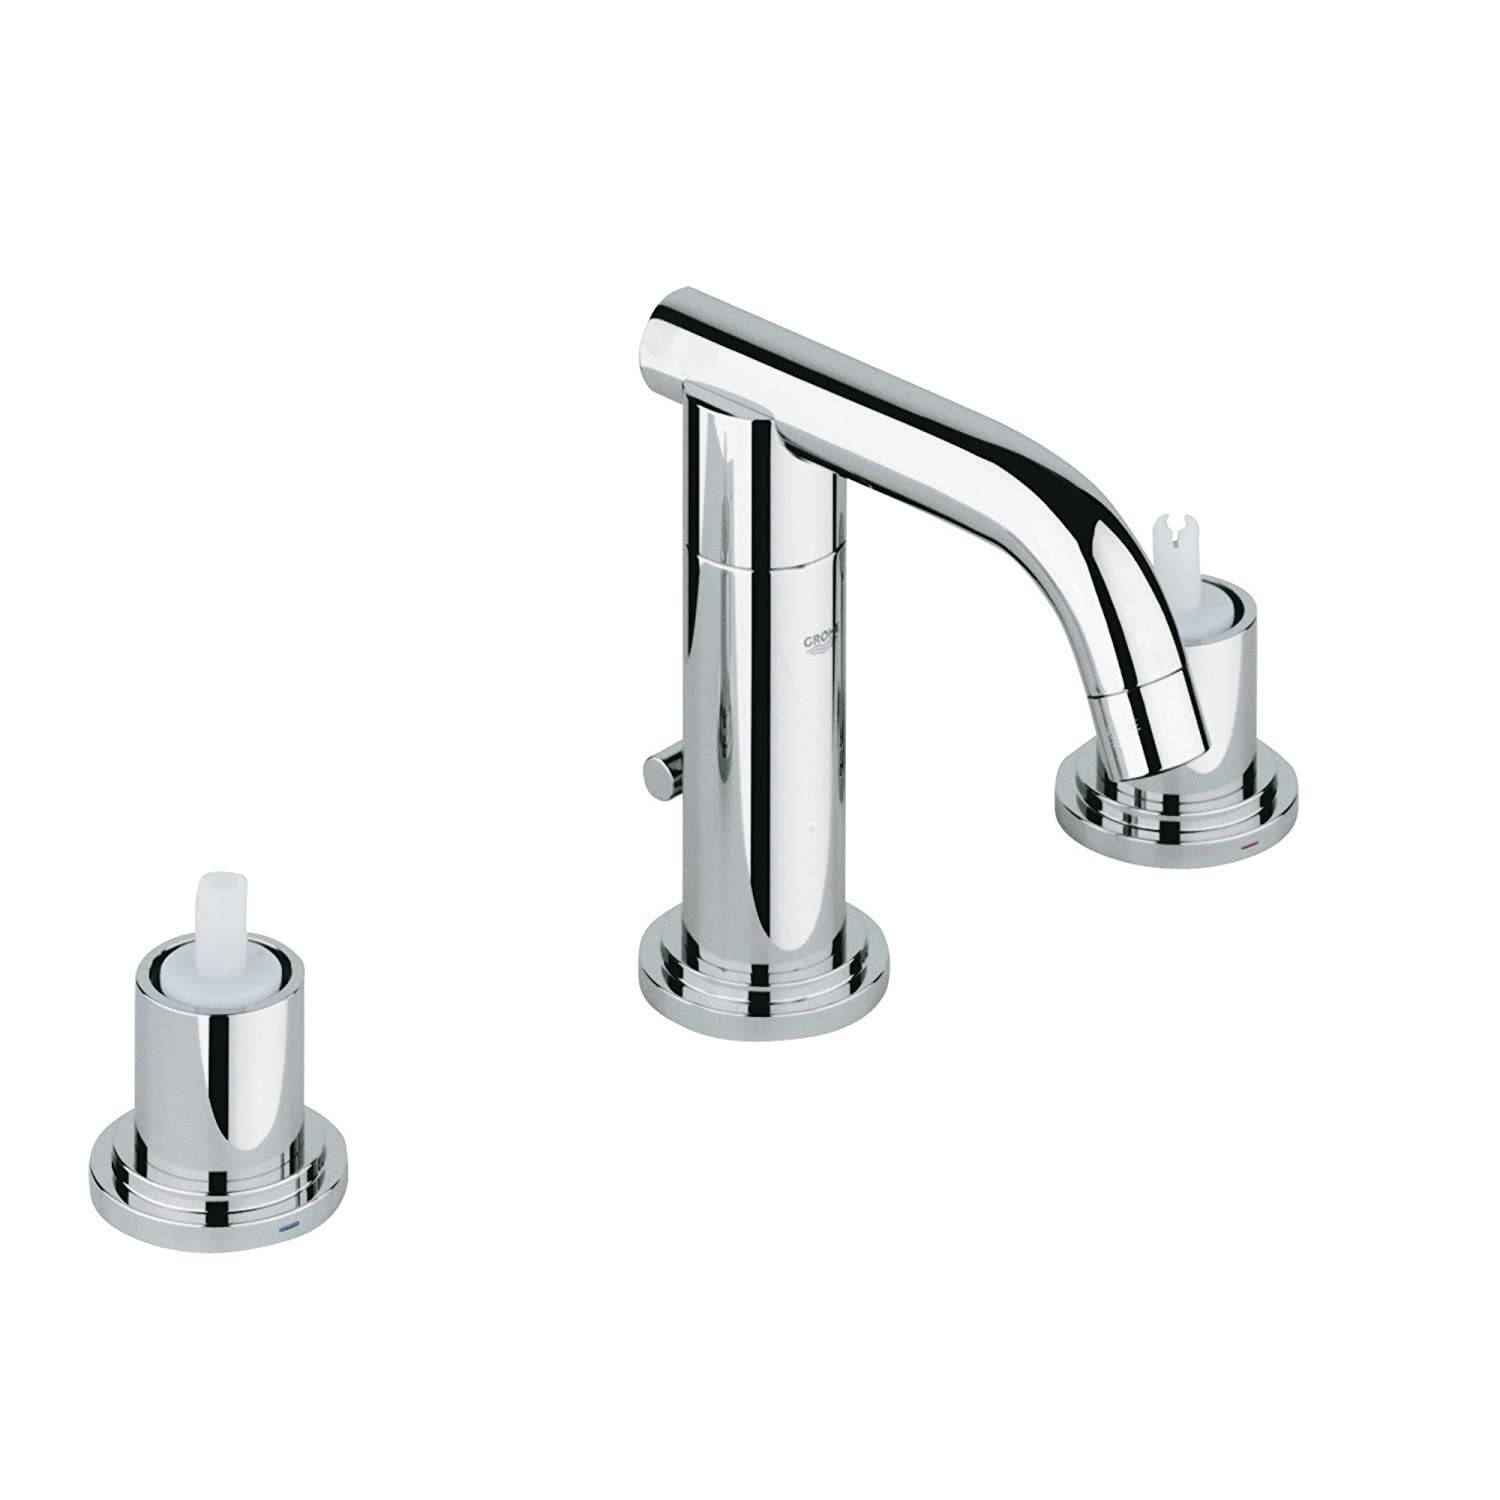 Grohe 20072000 Atrio 2-handle Low Spout Kitchen Faucet – 1.5 GPM